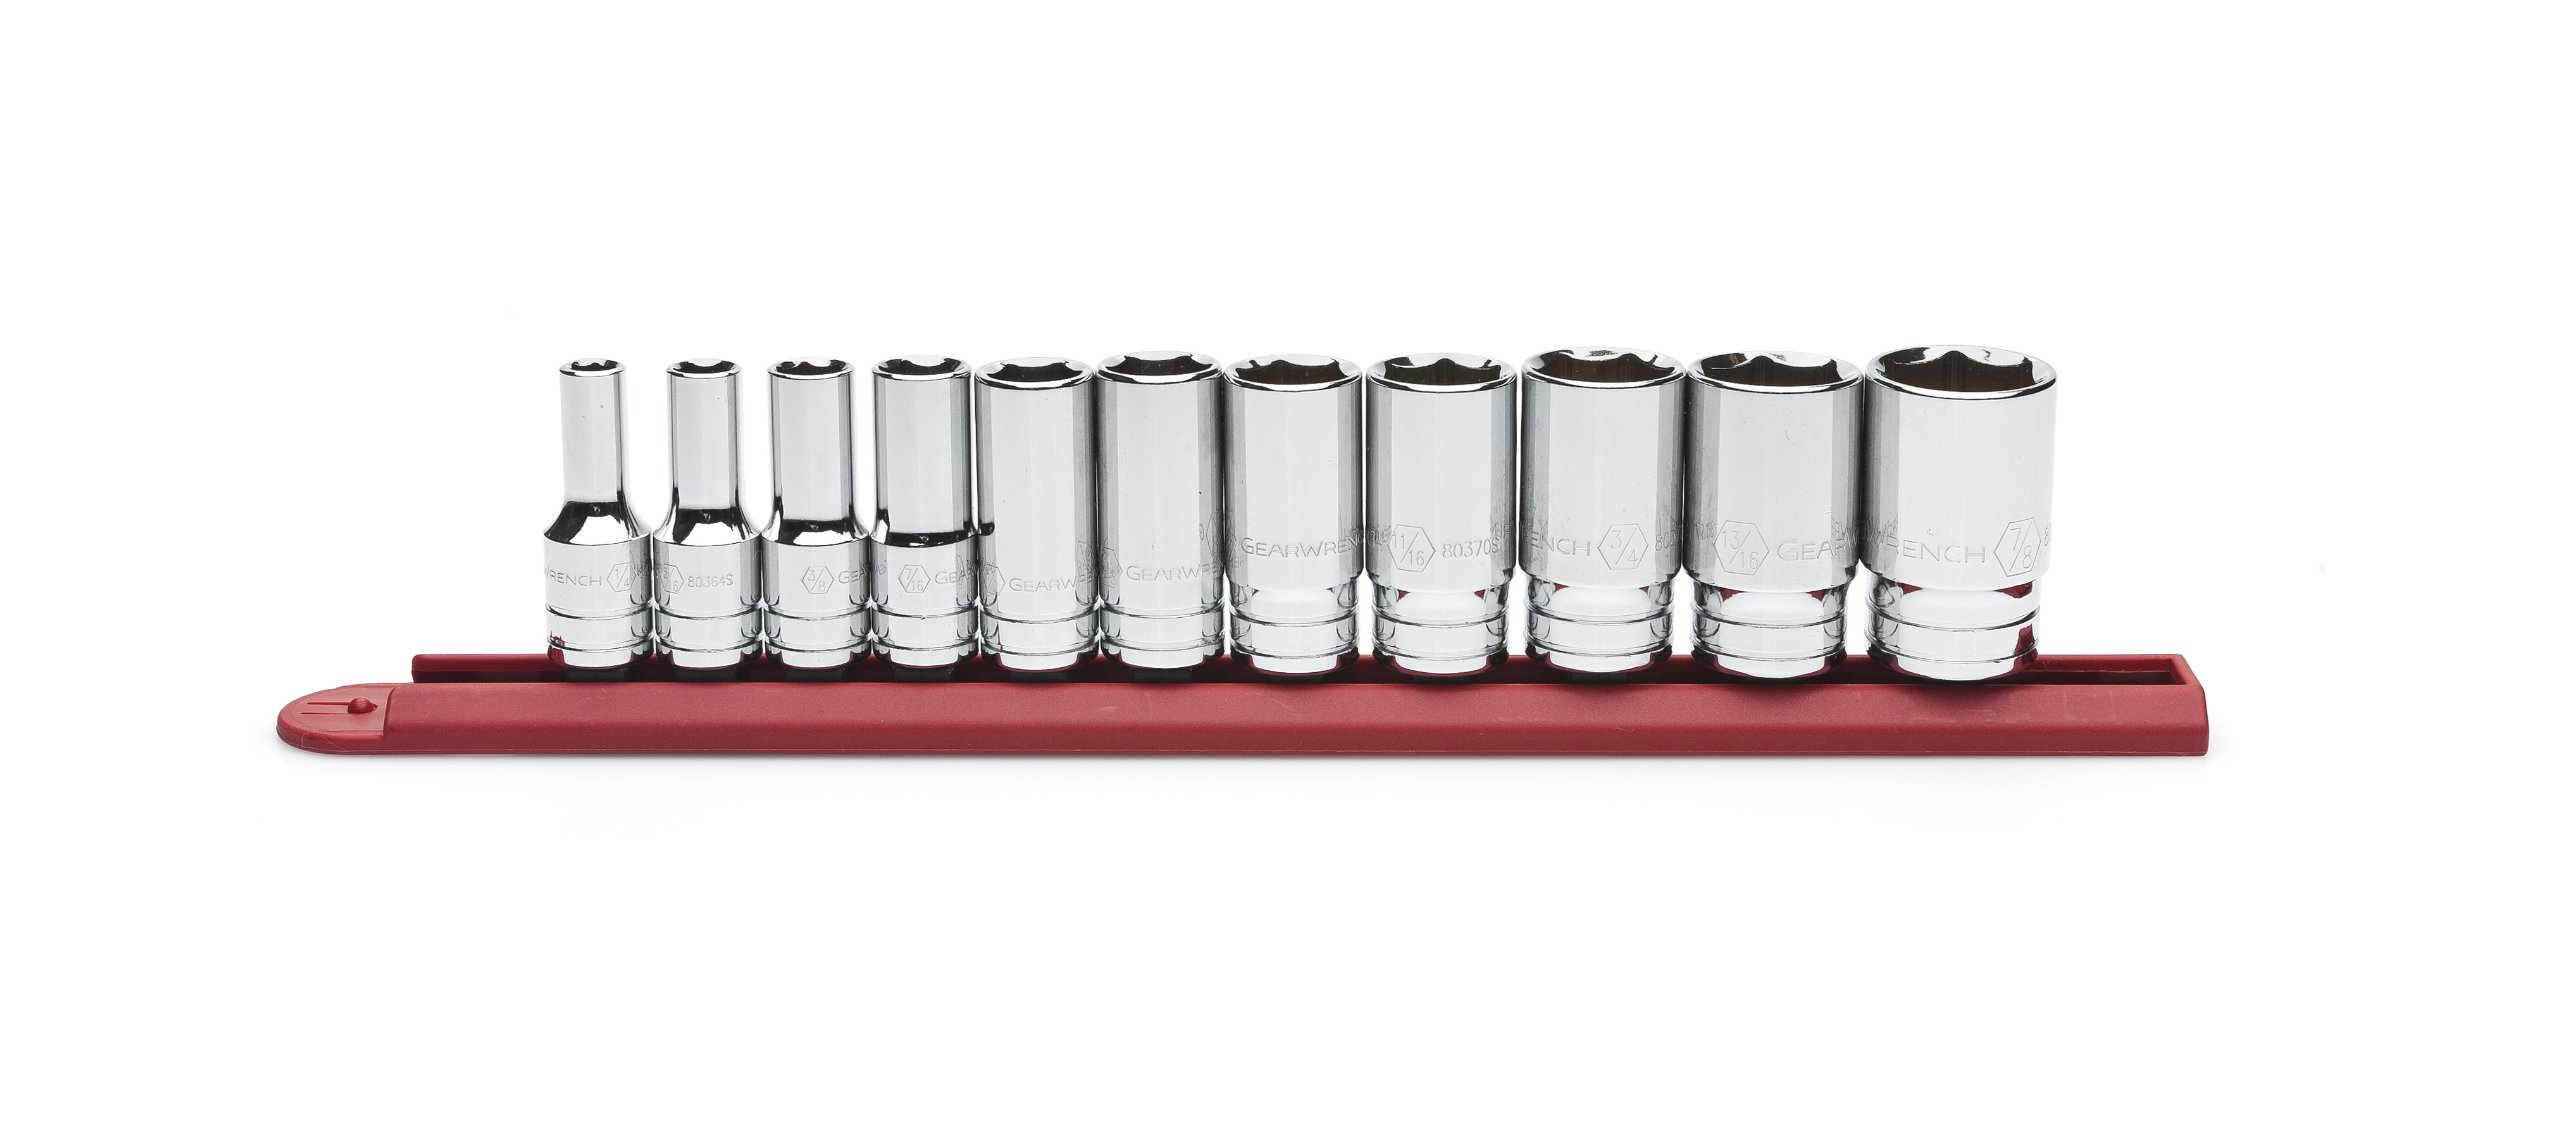 GEARWRENCH 11 Pc. 3/8'' Drive 6 Point Mid Length SAE Socket Set - 80555S by GearWrench